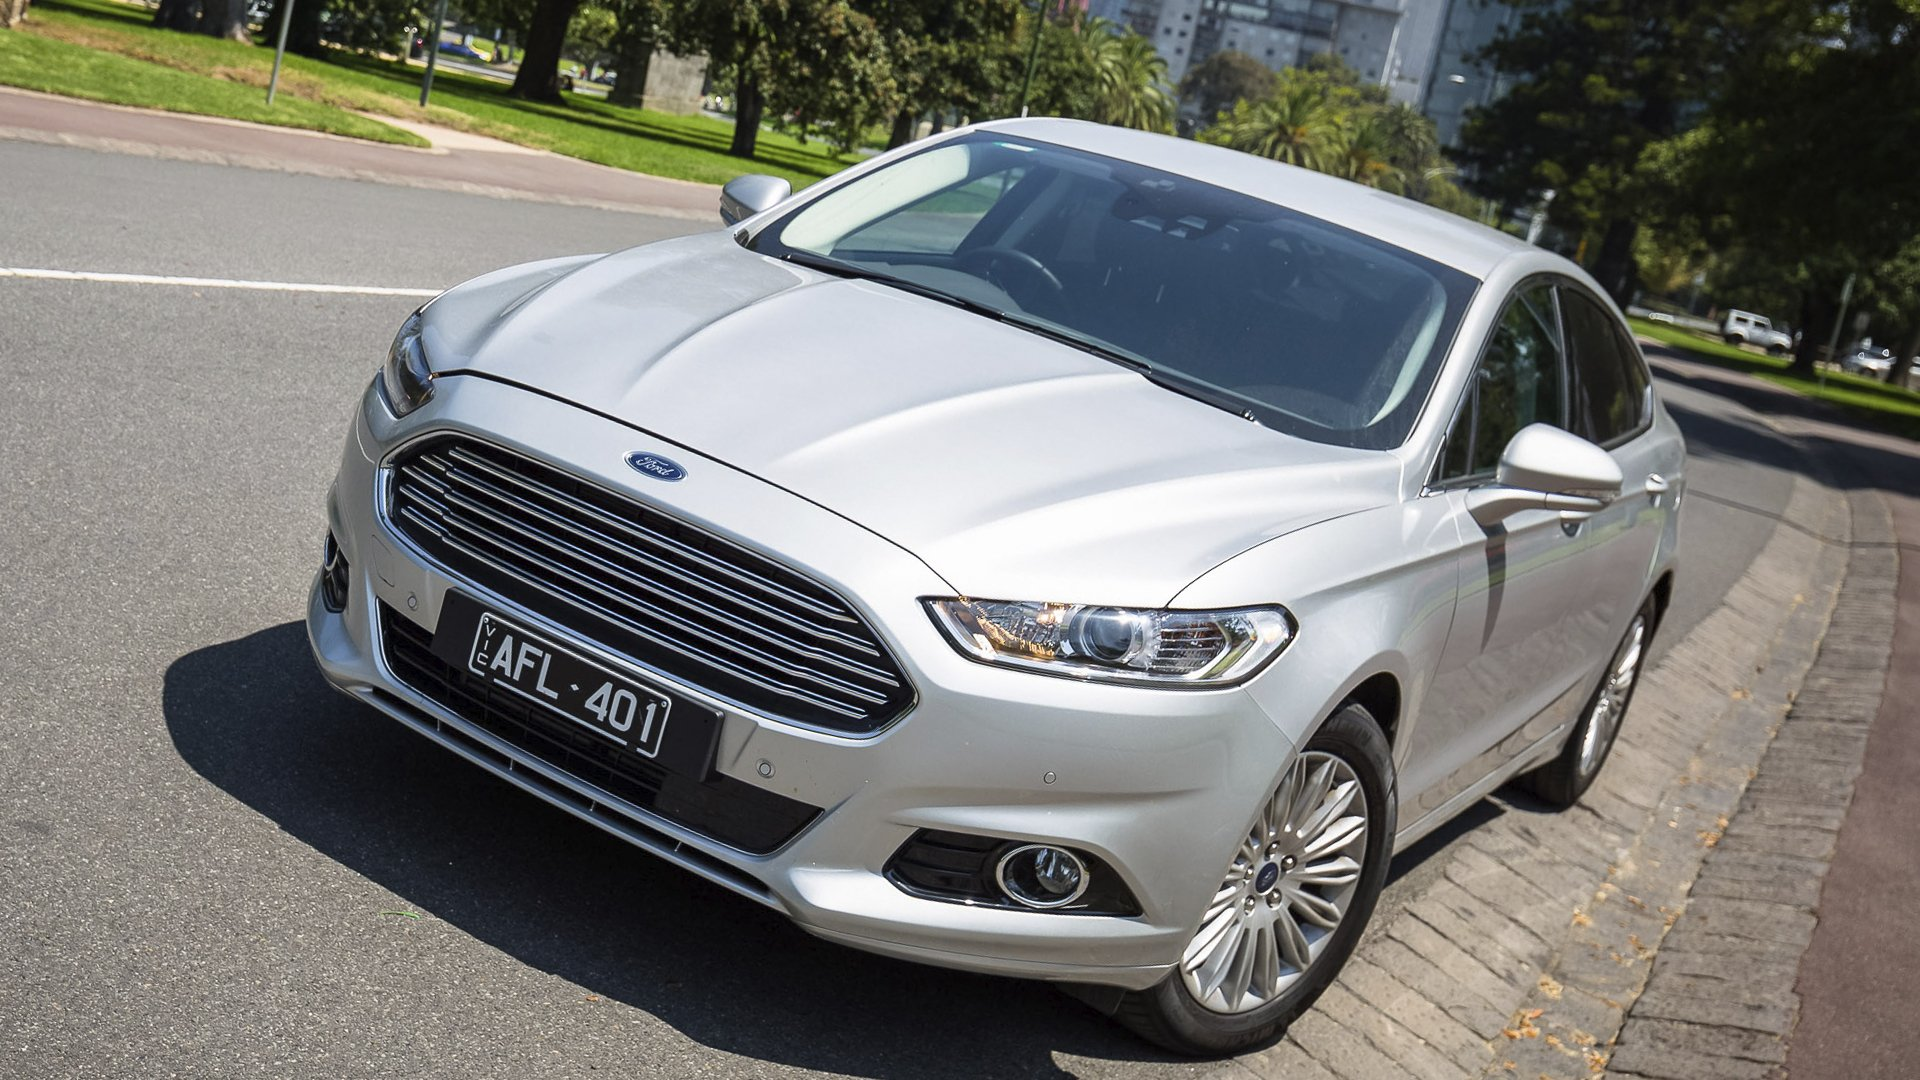 New 2019 Ford Mondeo Exterior Changes